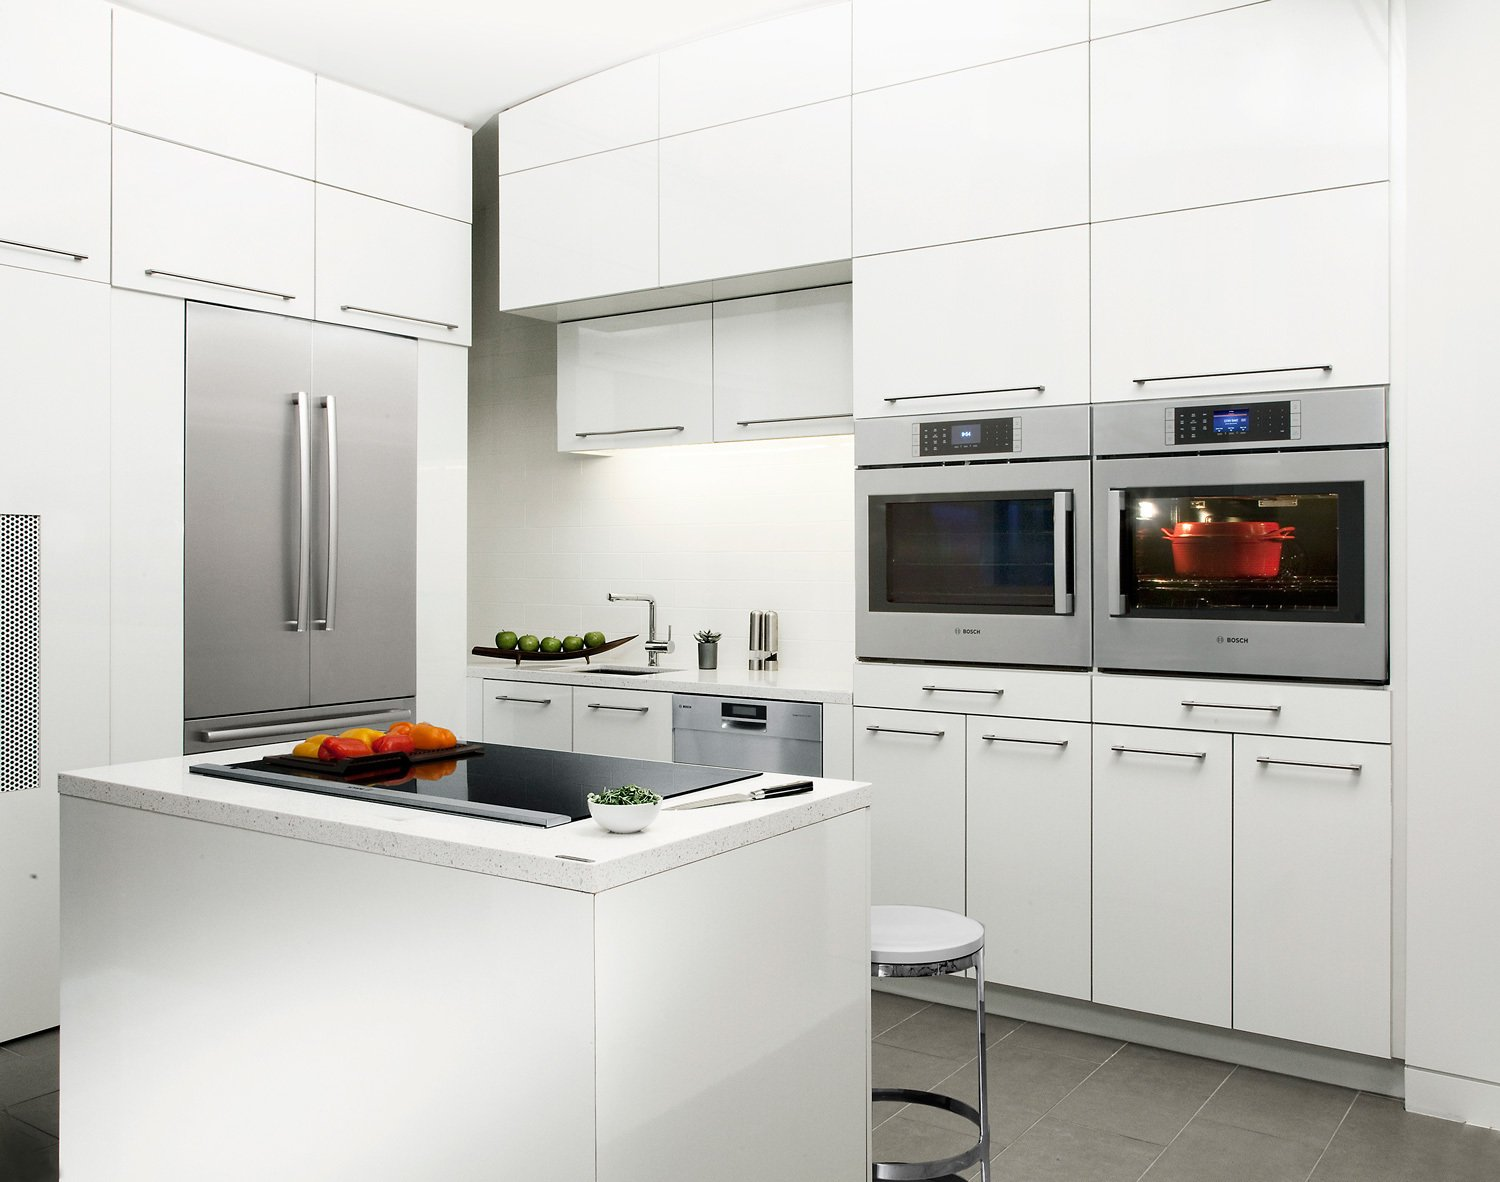 This rational European ethos motivates Bosch appliances' design down to the most minute details. For meals that require large and small pots, the FlexInduction feature on Bosch Benchmark induction cooktops combines two distinct cooking zones into one contiguous area, providing total fluidity of movement.  Kitchen from Modern Kitchen